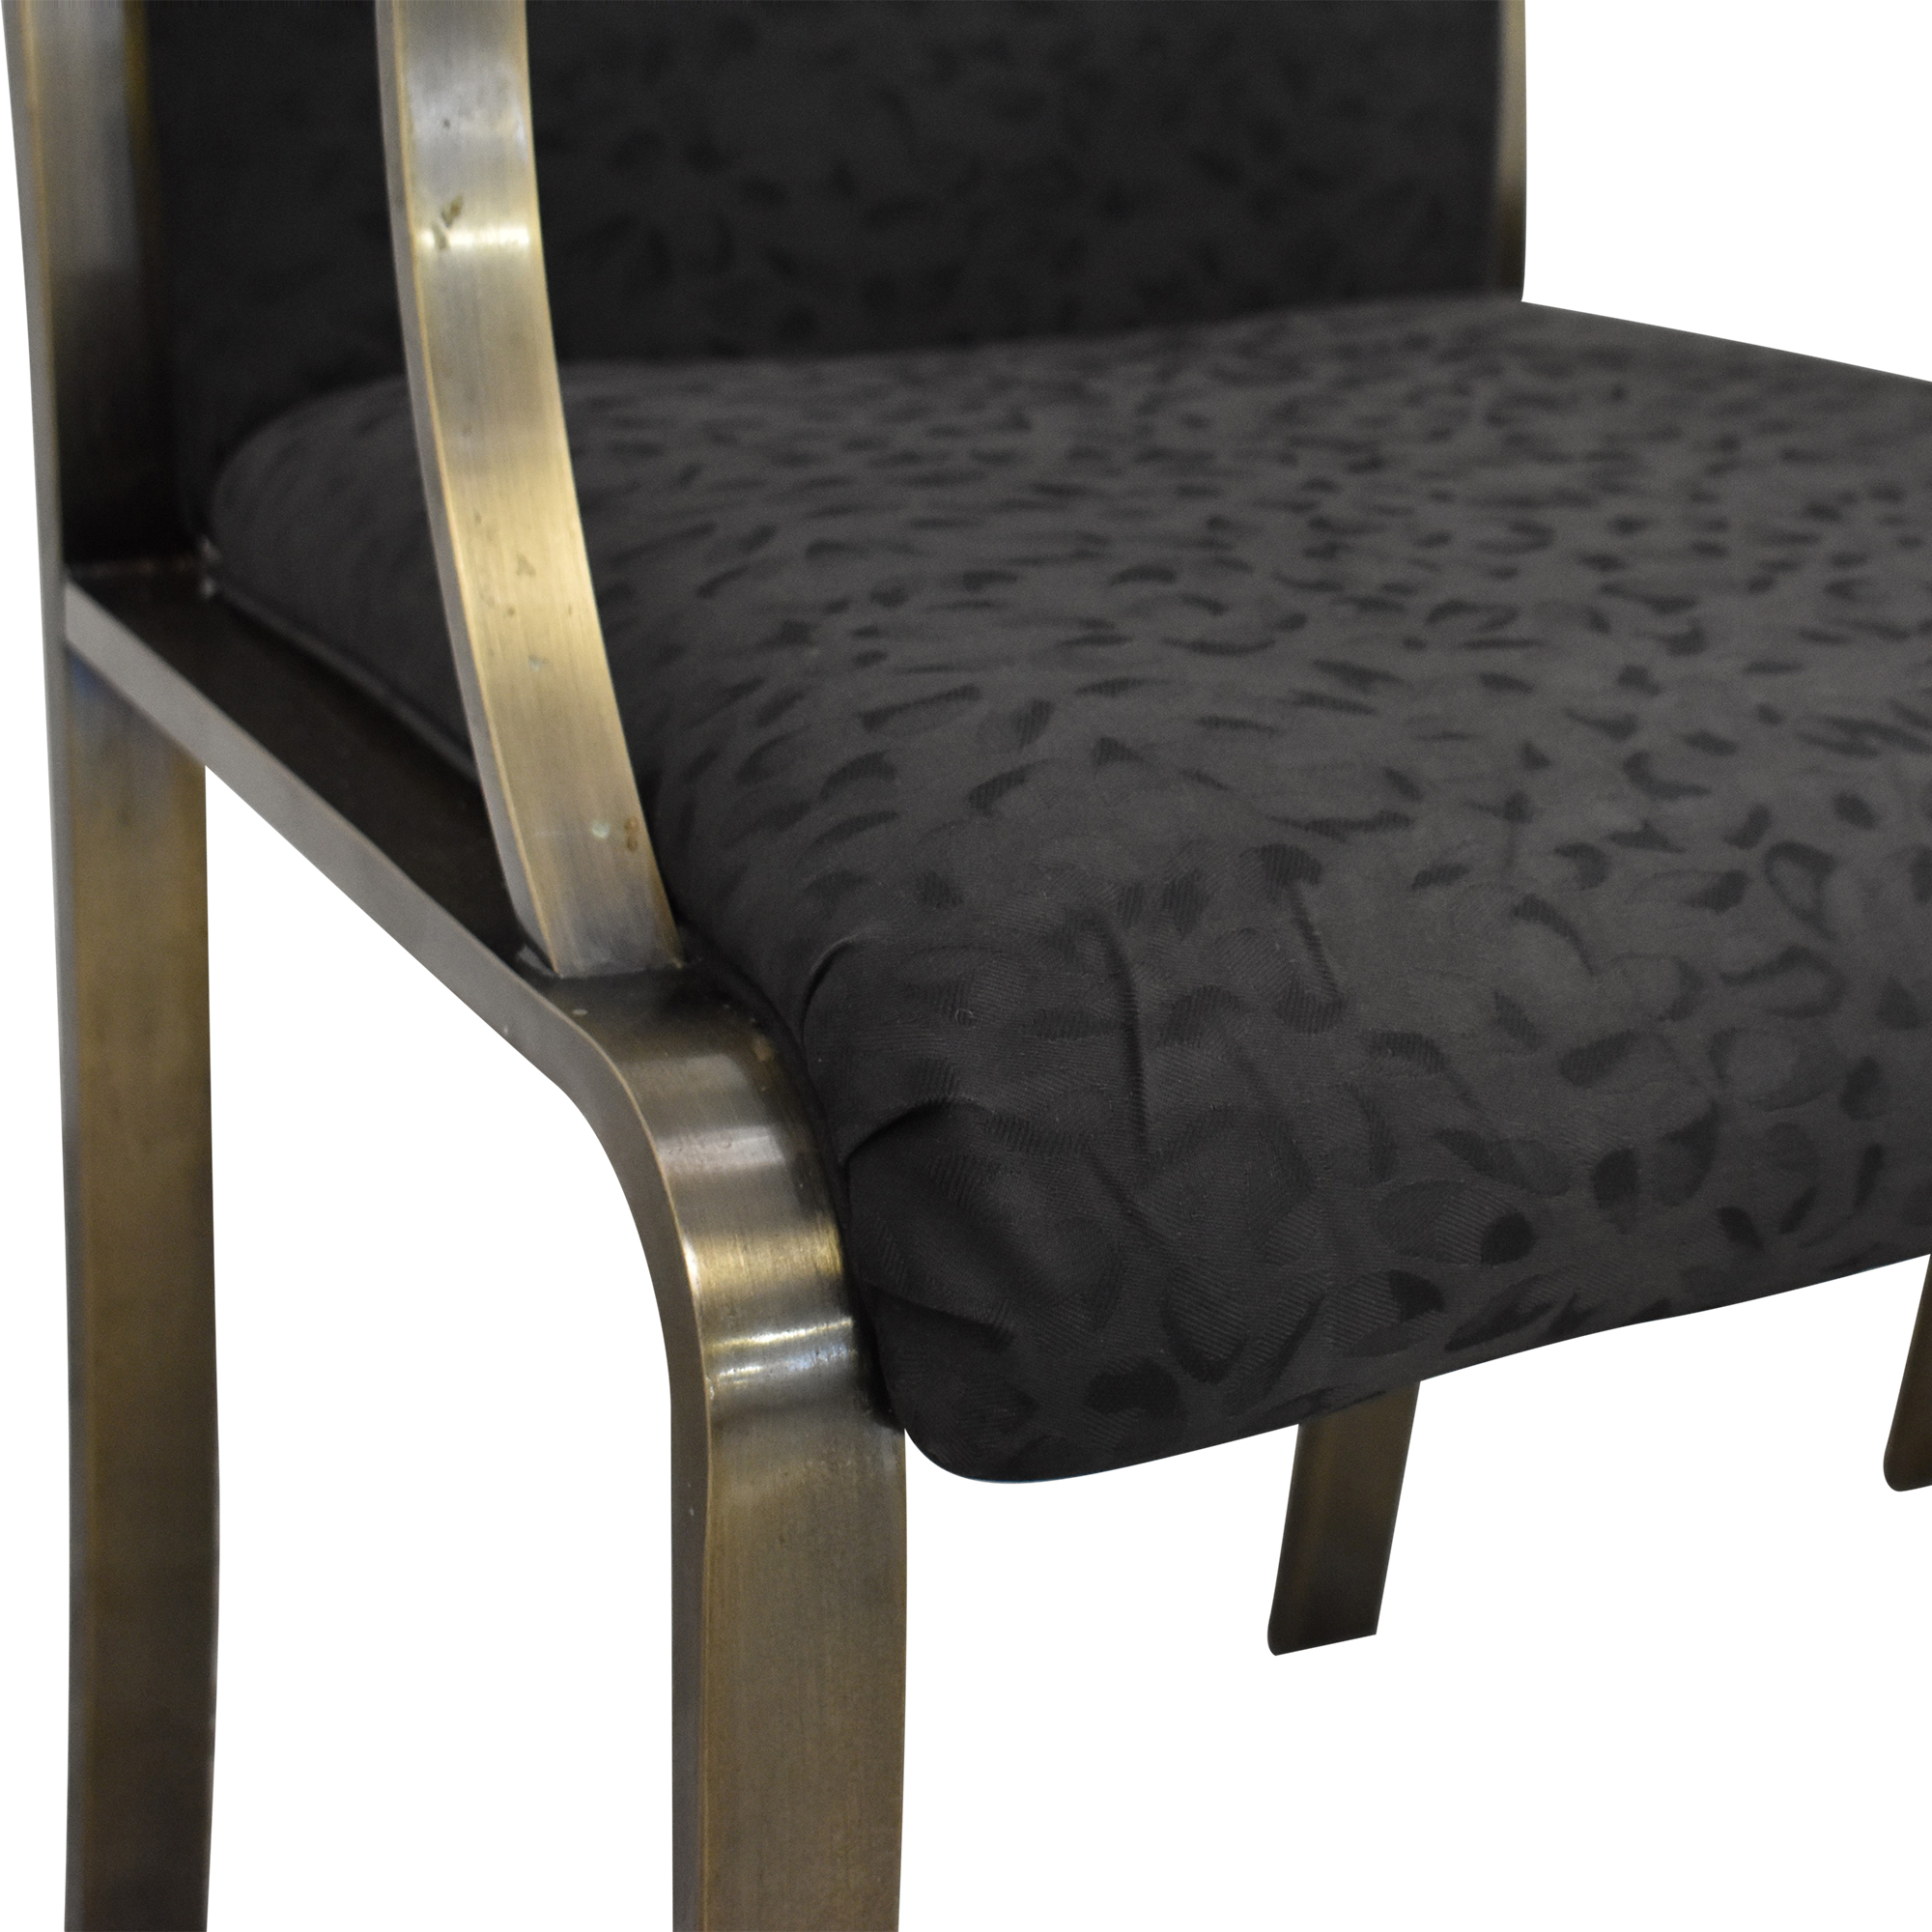 Design Institute America Design Institute America High Back Dining Chairs on sale